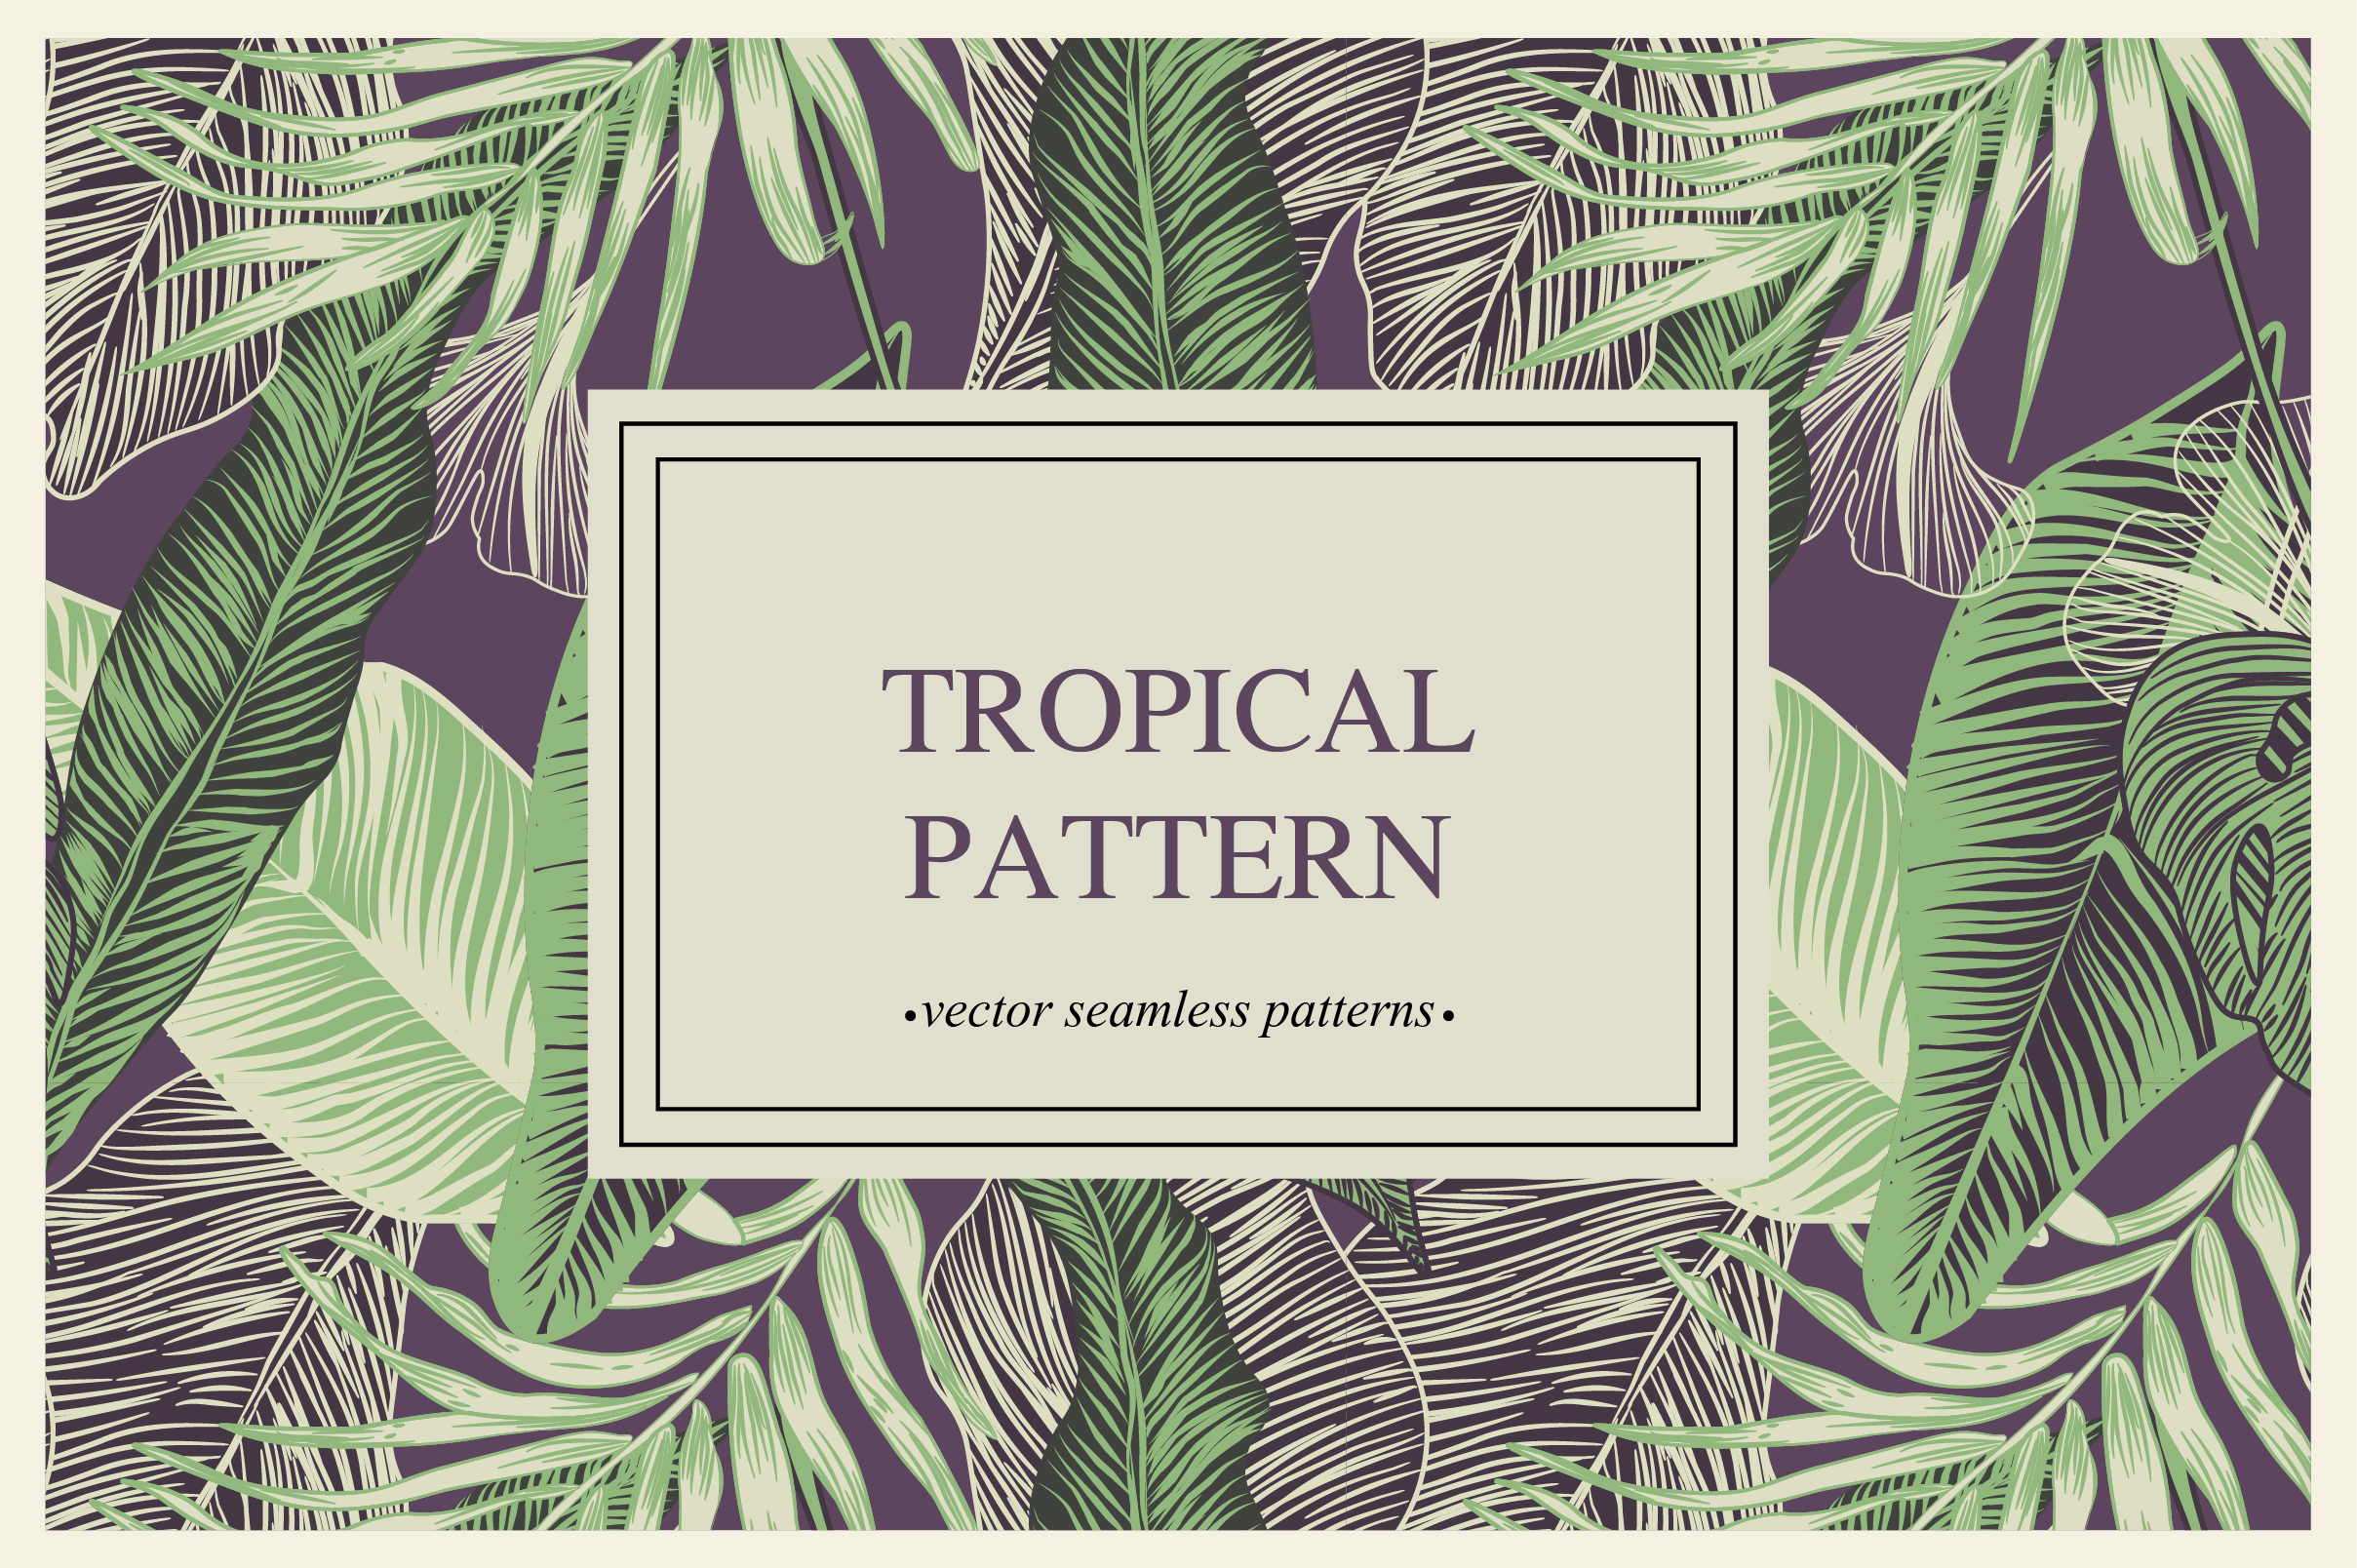 Tropical pattern example image 8